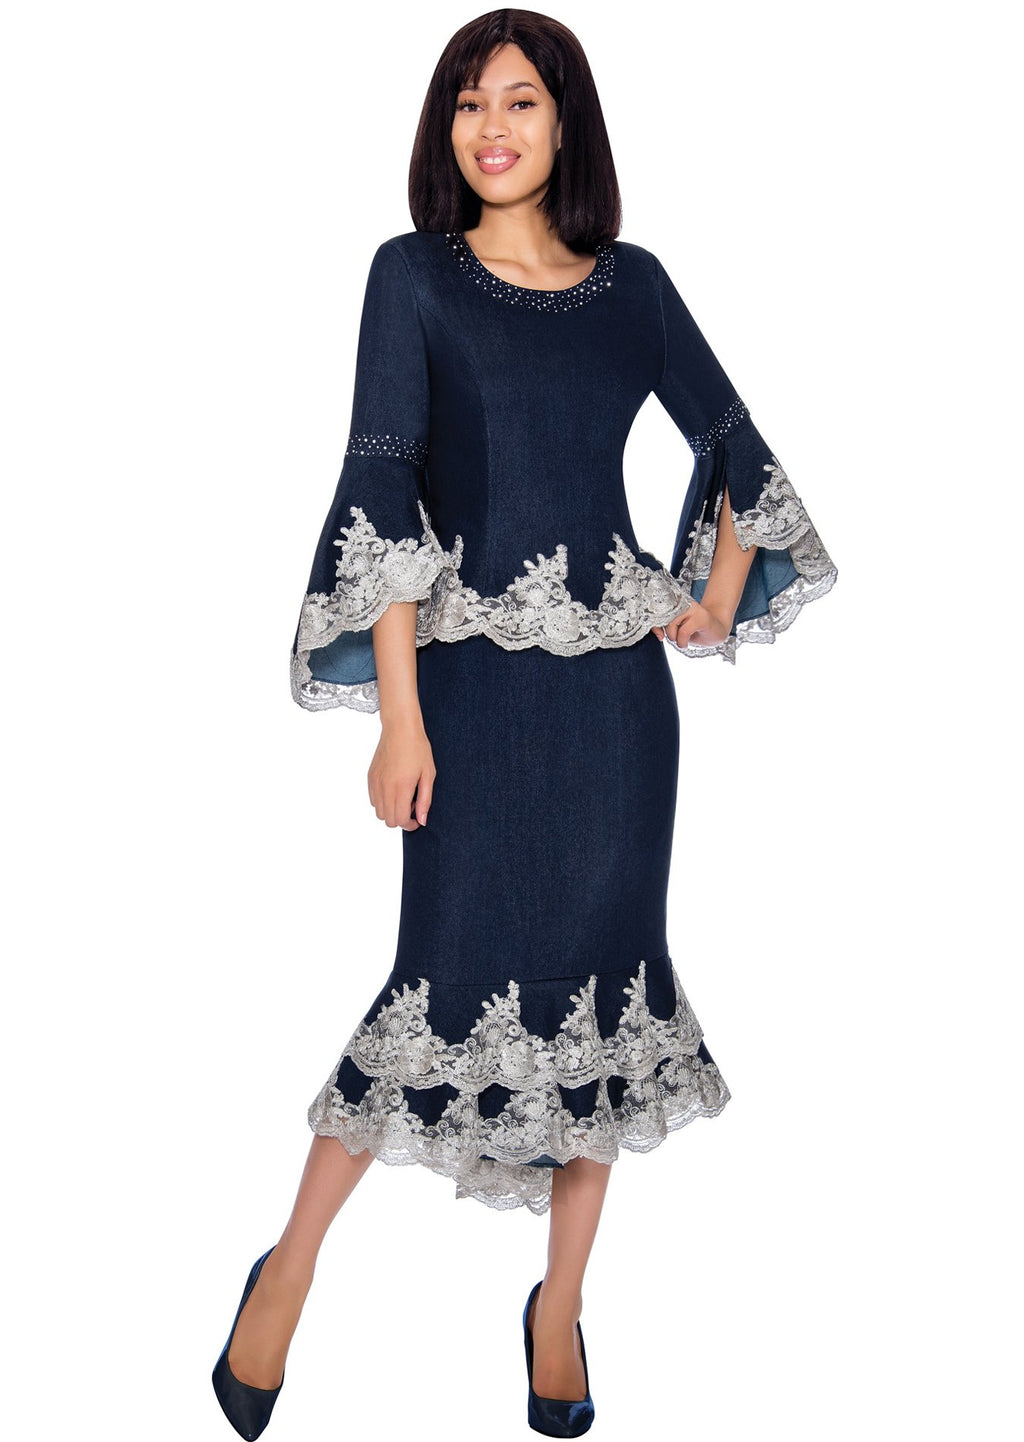 Lace-Trimmed Denim Skirt Set 62032